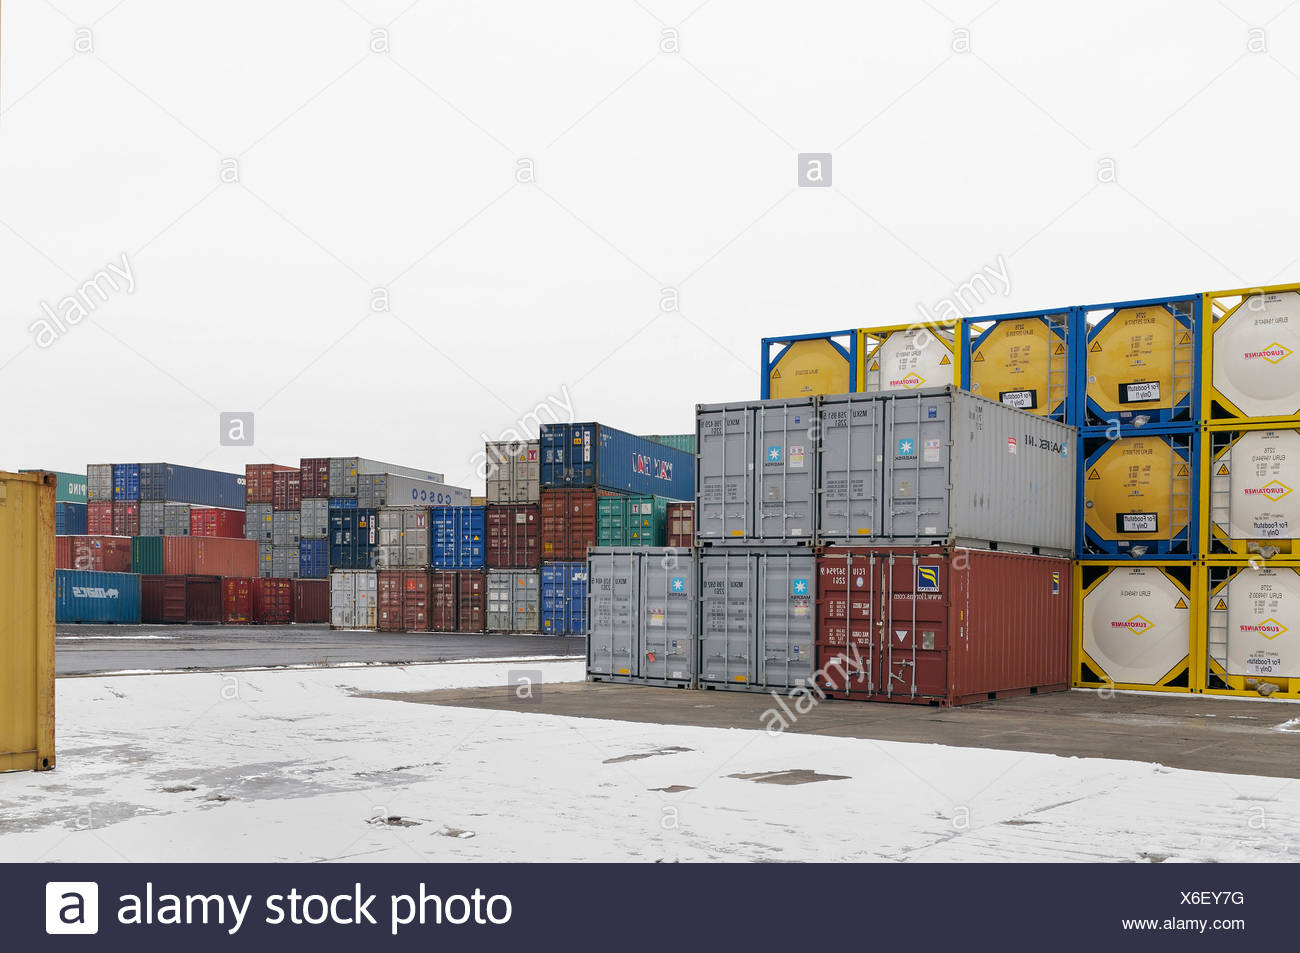 tank container stock photos tank container stock images alamy. Black Bedroom Furniture Sets. Home Design Ideas